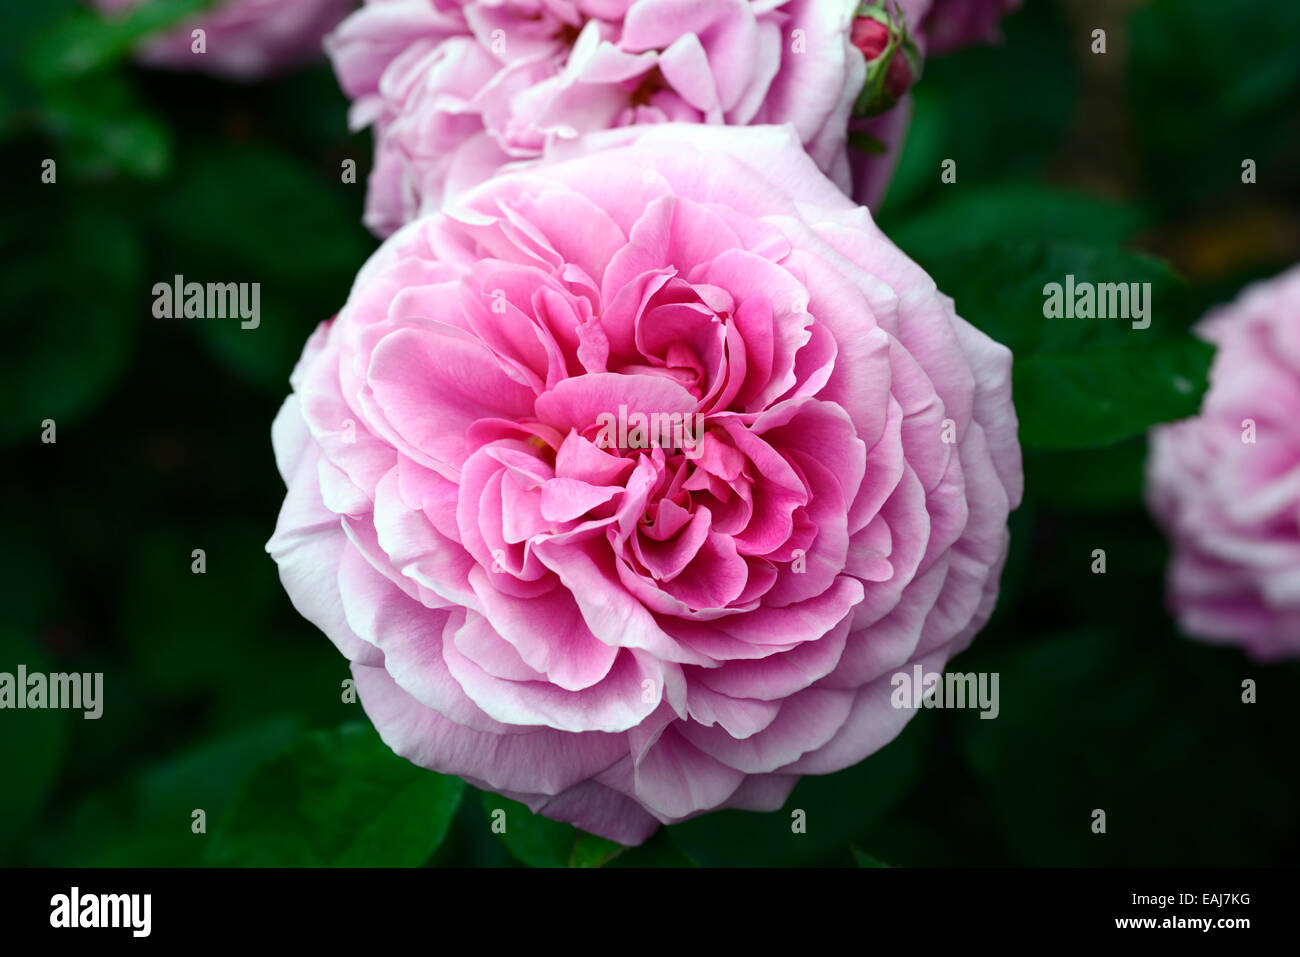 Rosa gertrude jekyll ausbord rose flower pink flowering flowers rosa gertrude jekyll ausbord rose flower pink flowering flowers fragrant scented climbing climber shrub shrubs rm floral mightylinksfo Image collections